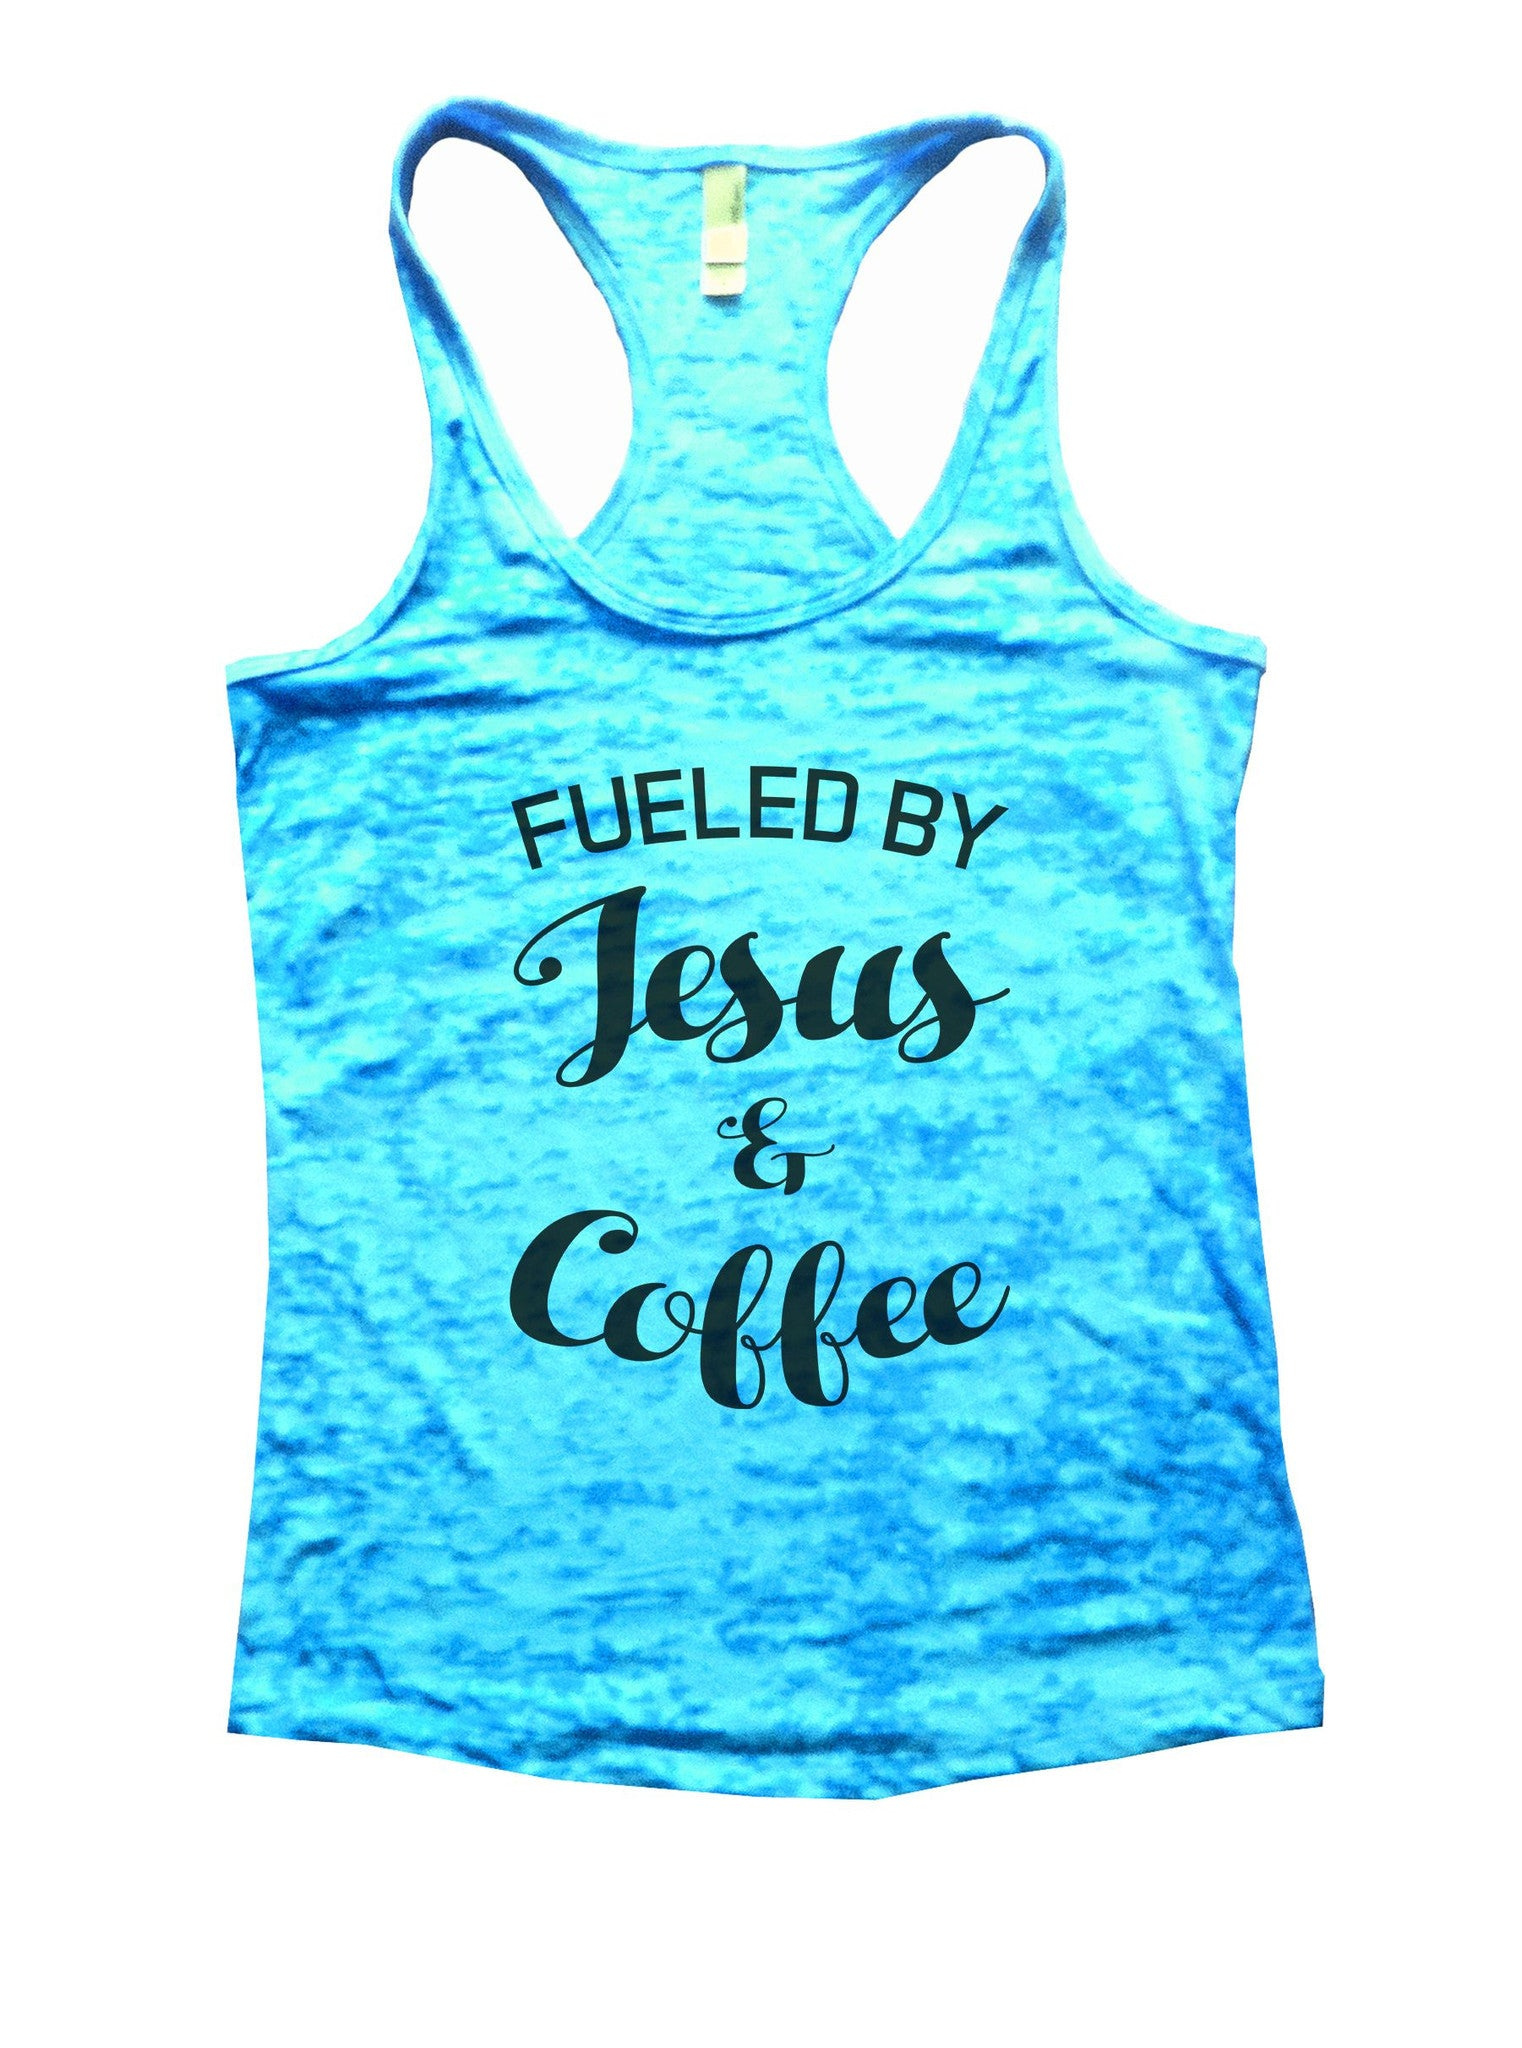 Fueled By Jesus & Coffee Burnout Tank Top By BurnoutTankTops.com - 1128 - Funny Shirts Tank Tops Burnouts and Triblends  - 5